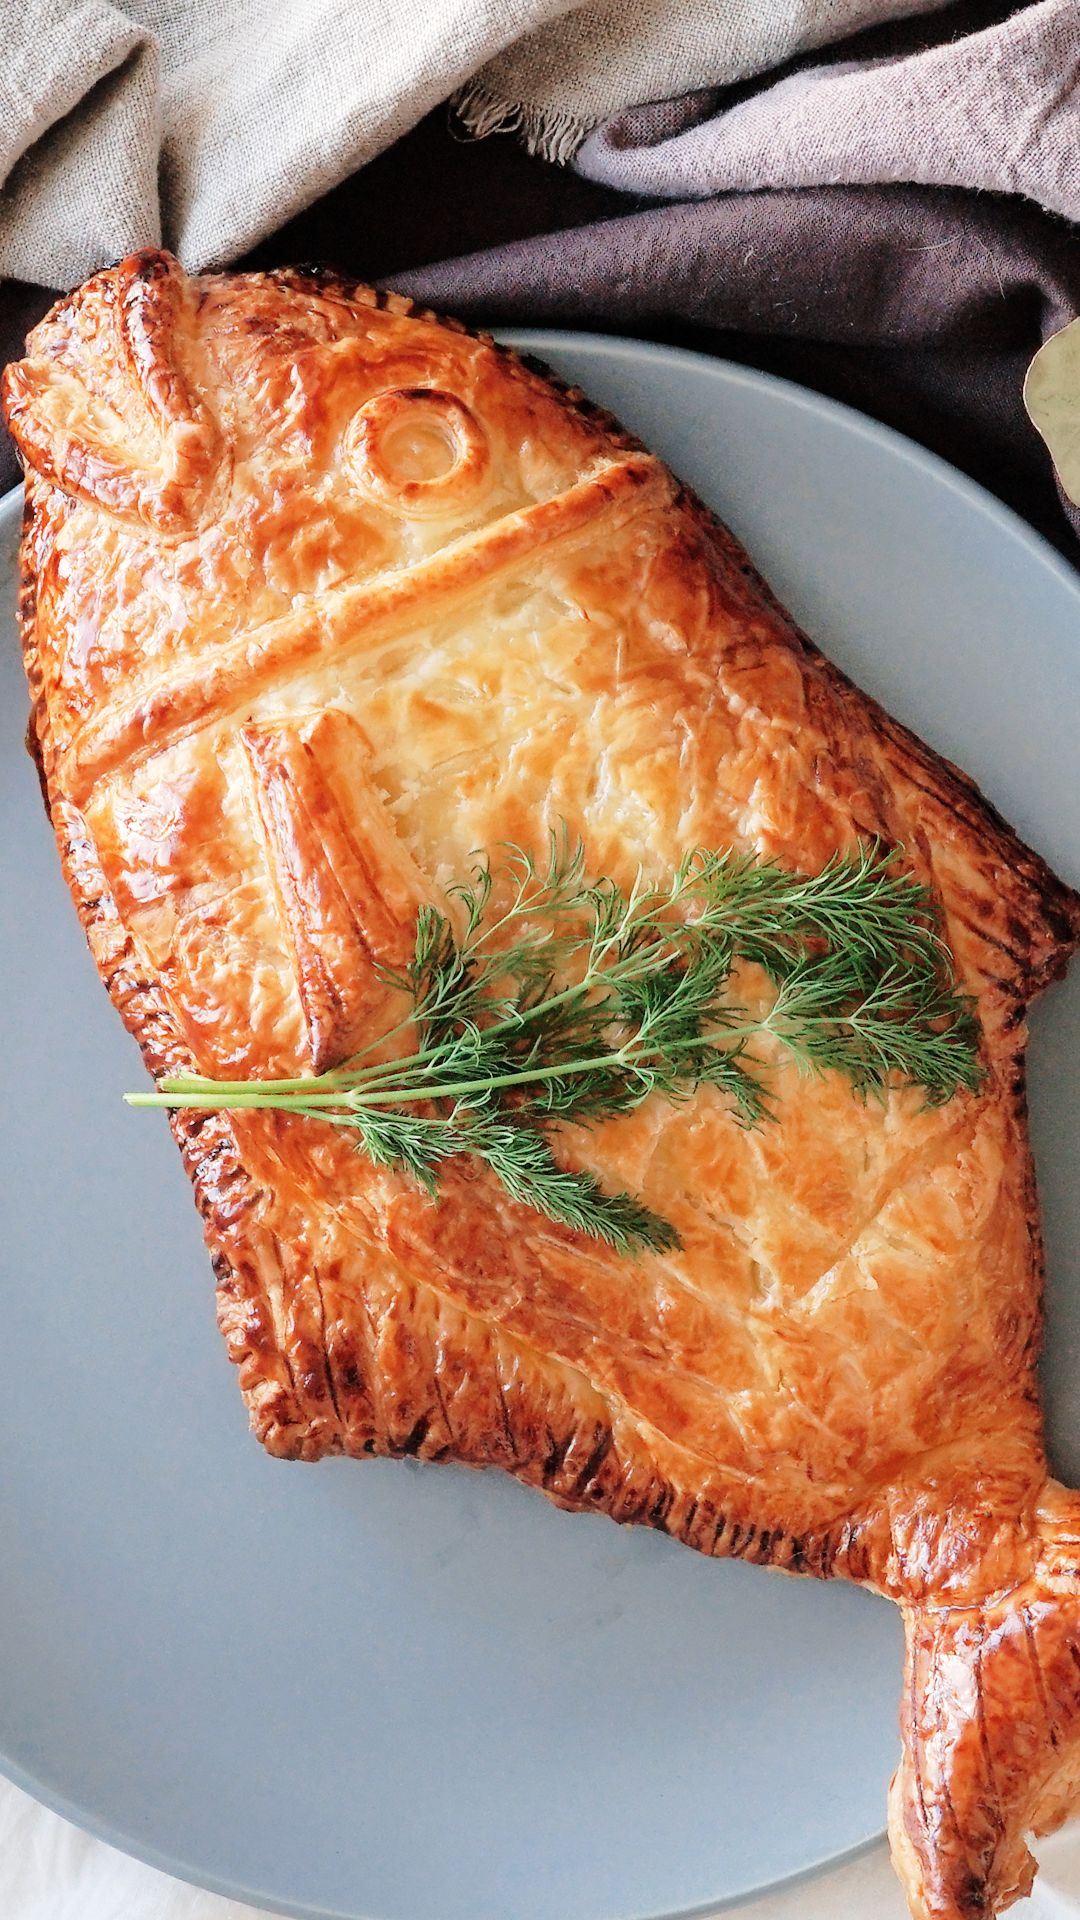 Salmon in Puff Pastry #recipeforpuffpastry